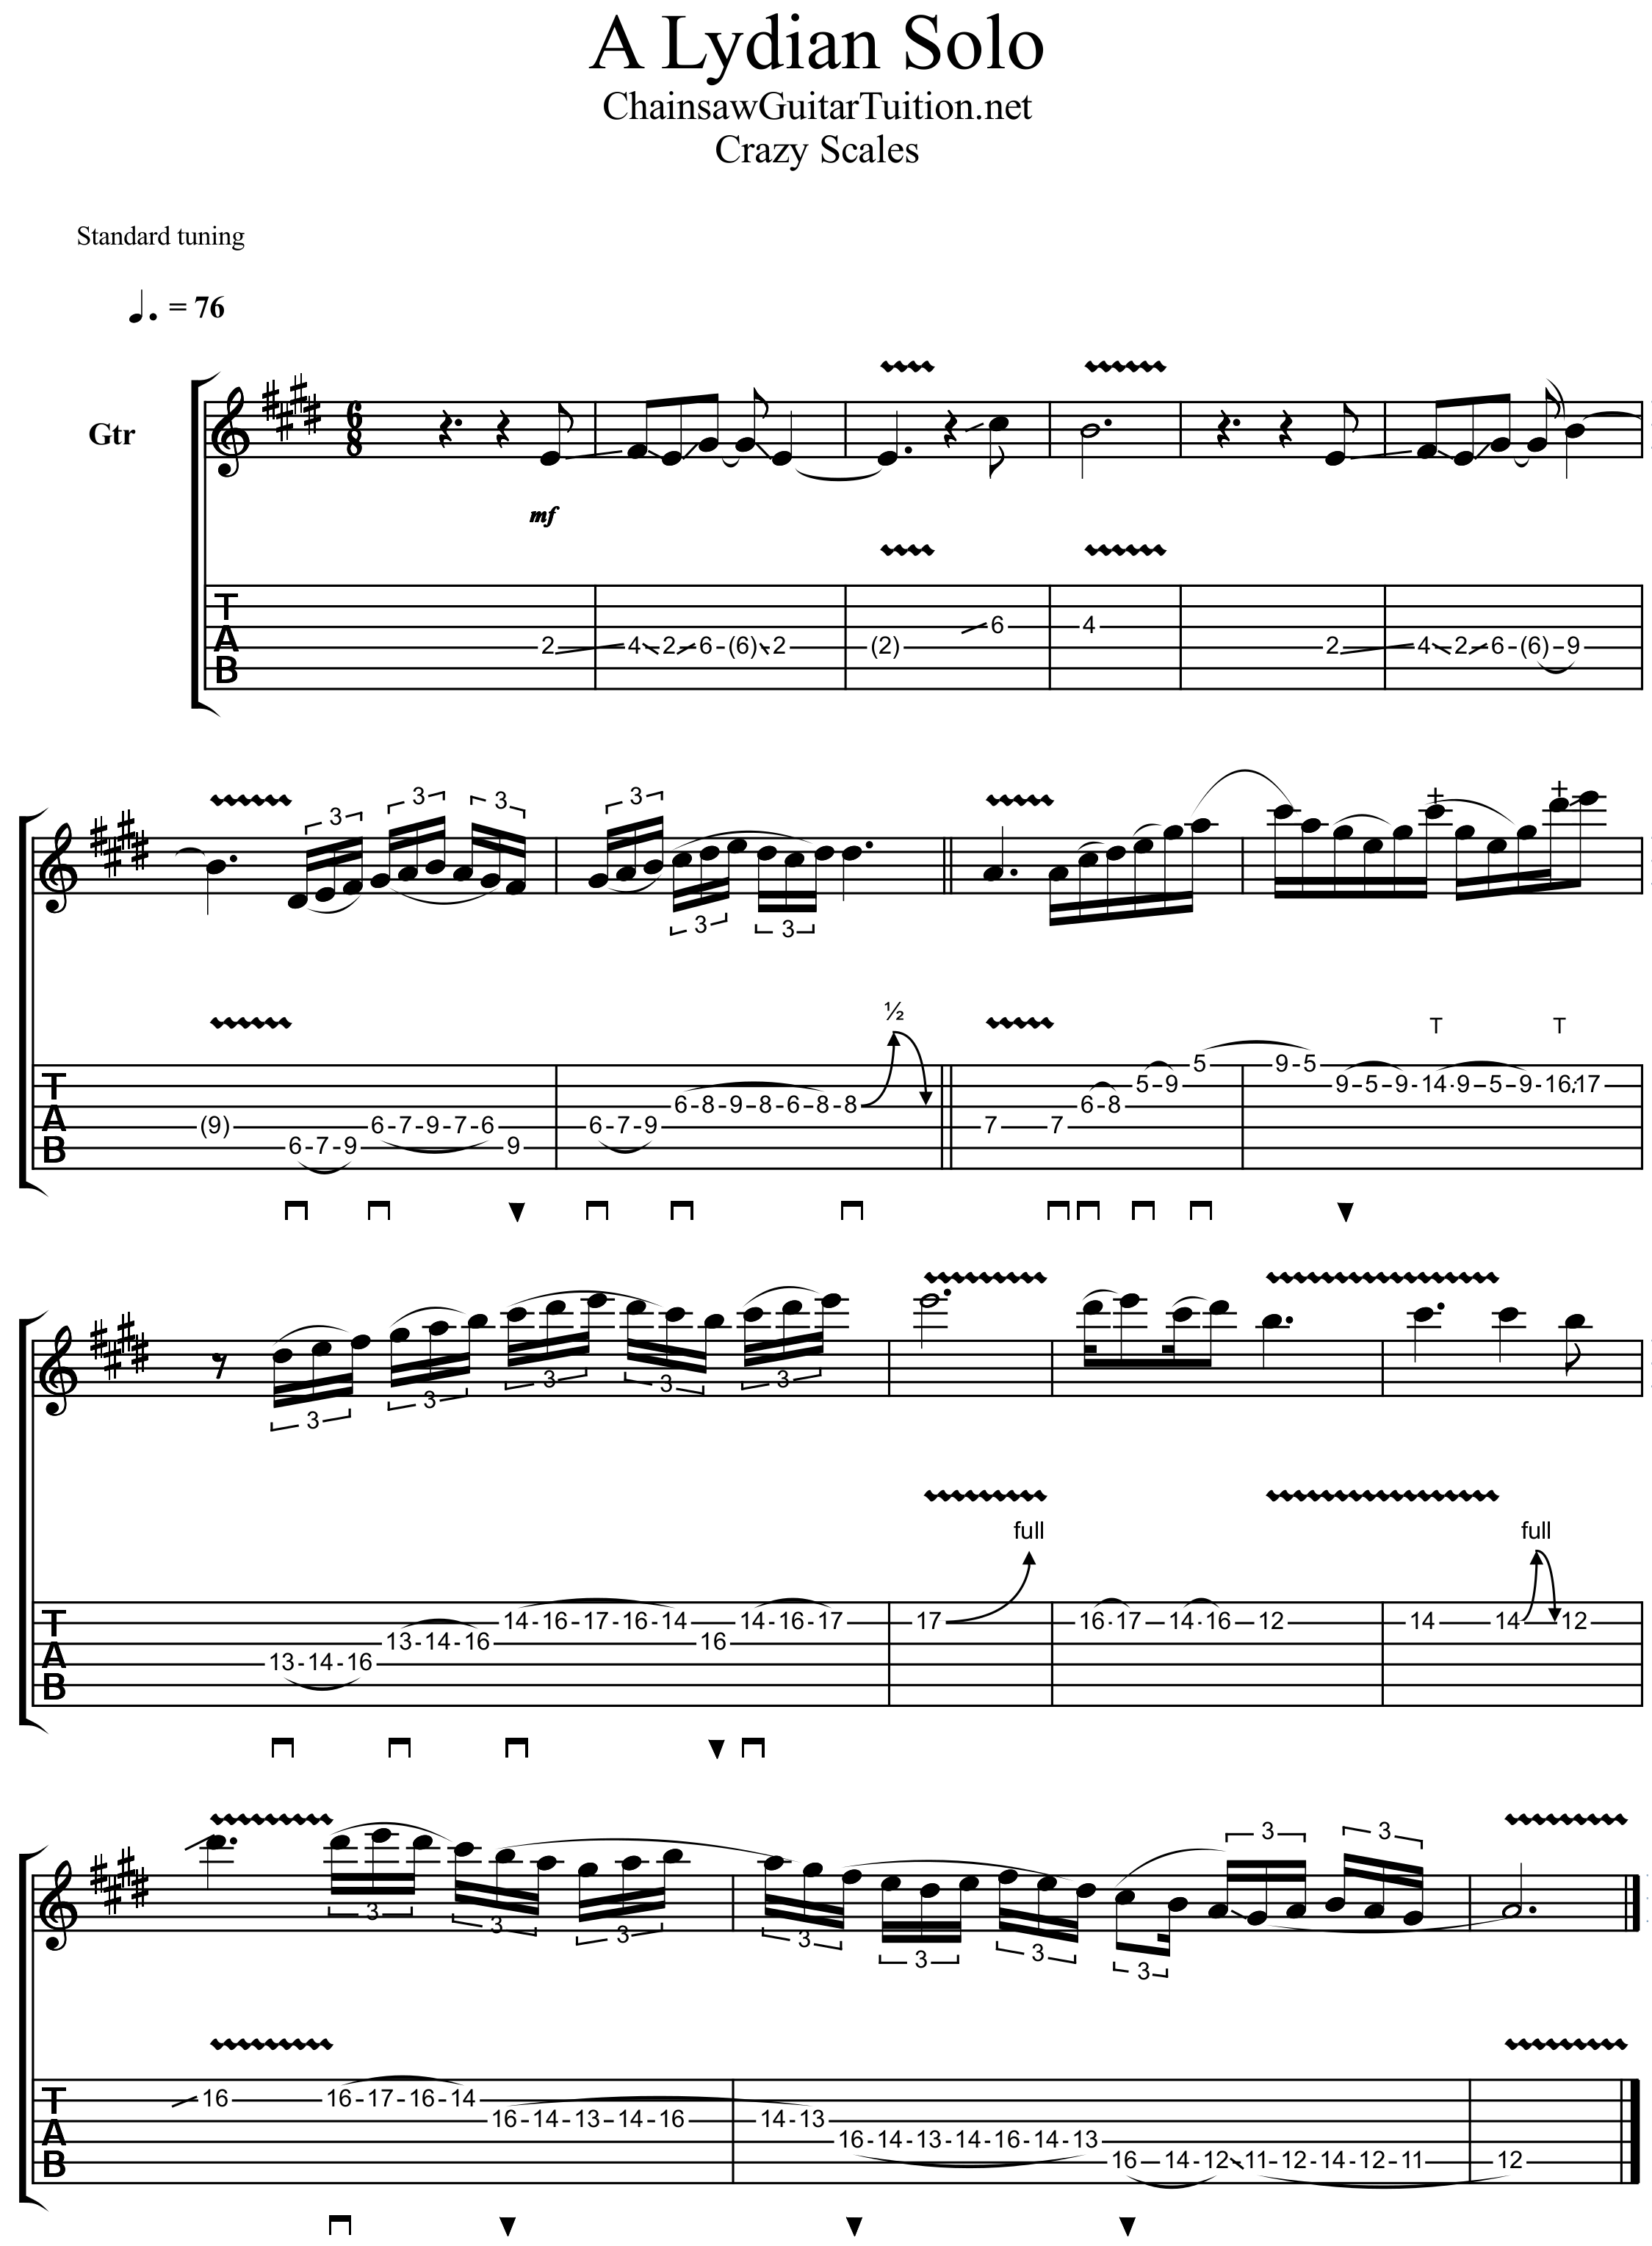 an example guitar solo using the Lydian mode